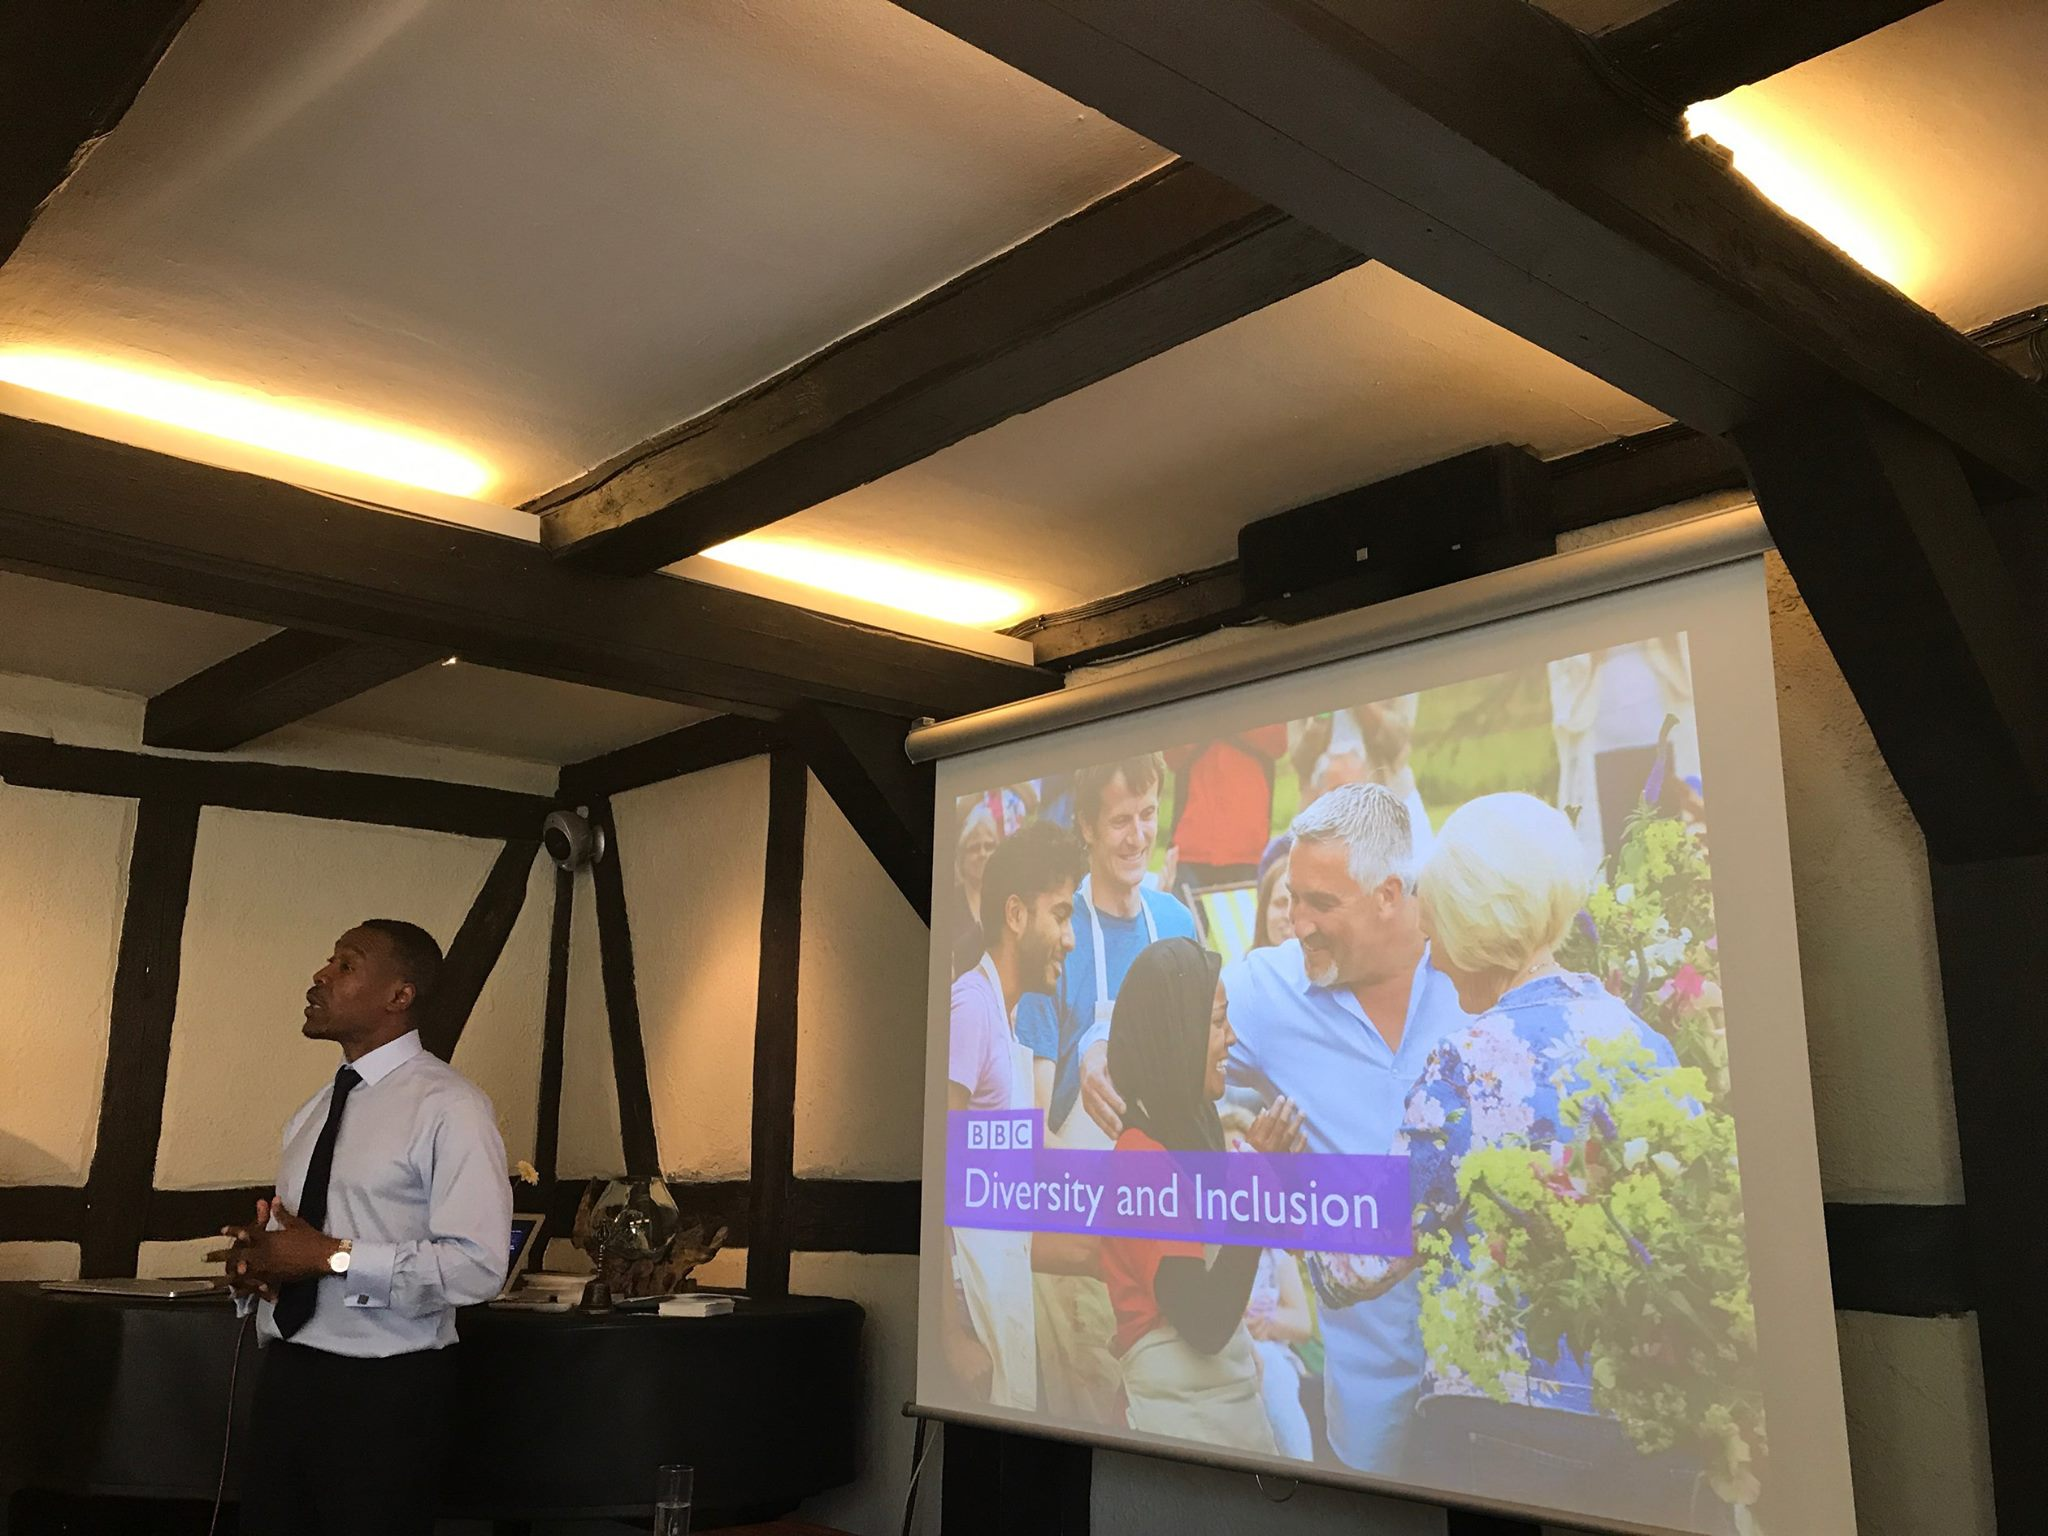 """Tunde Ogungbesan fra britiske BBC er leder for deres mangfoldsprogram. """"We want diversity and inclusion to be business as usual at the BBC and at the heart of everything we do on- and off-air."""", sier han."""